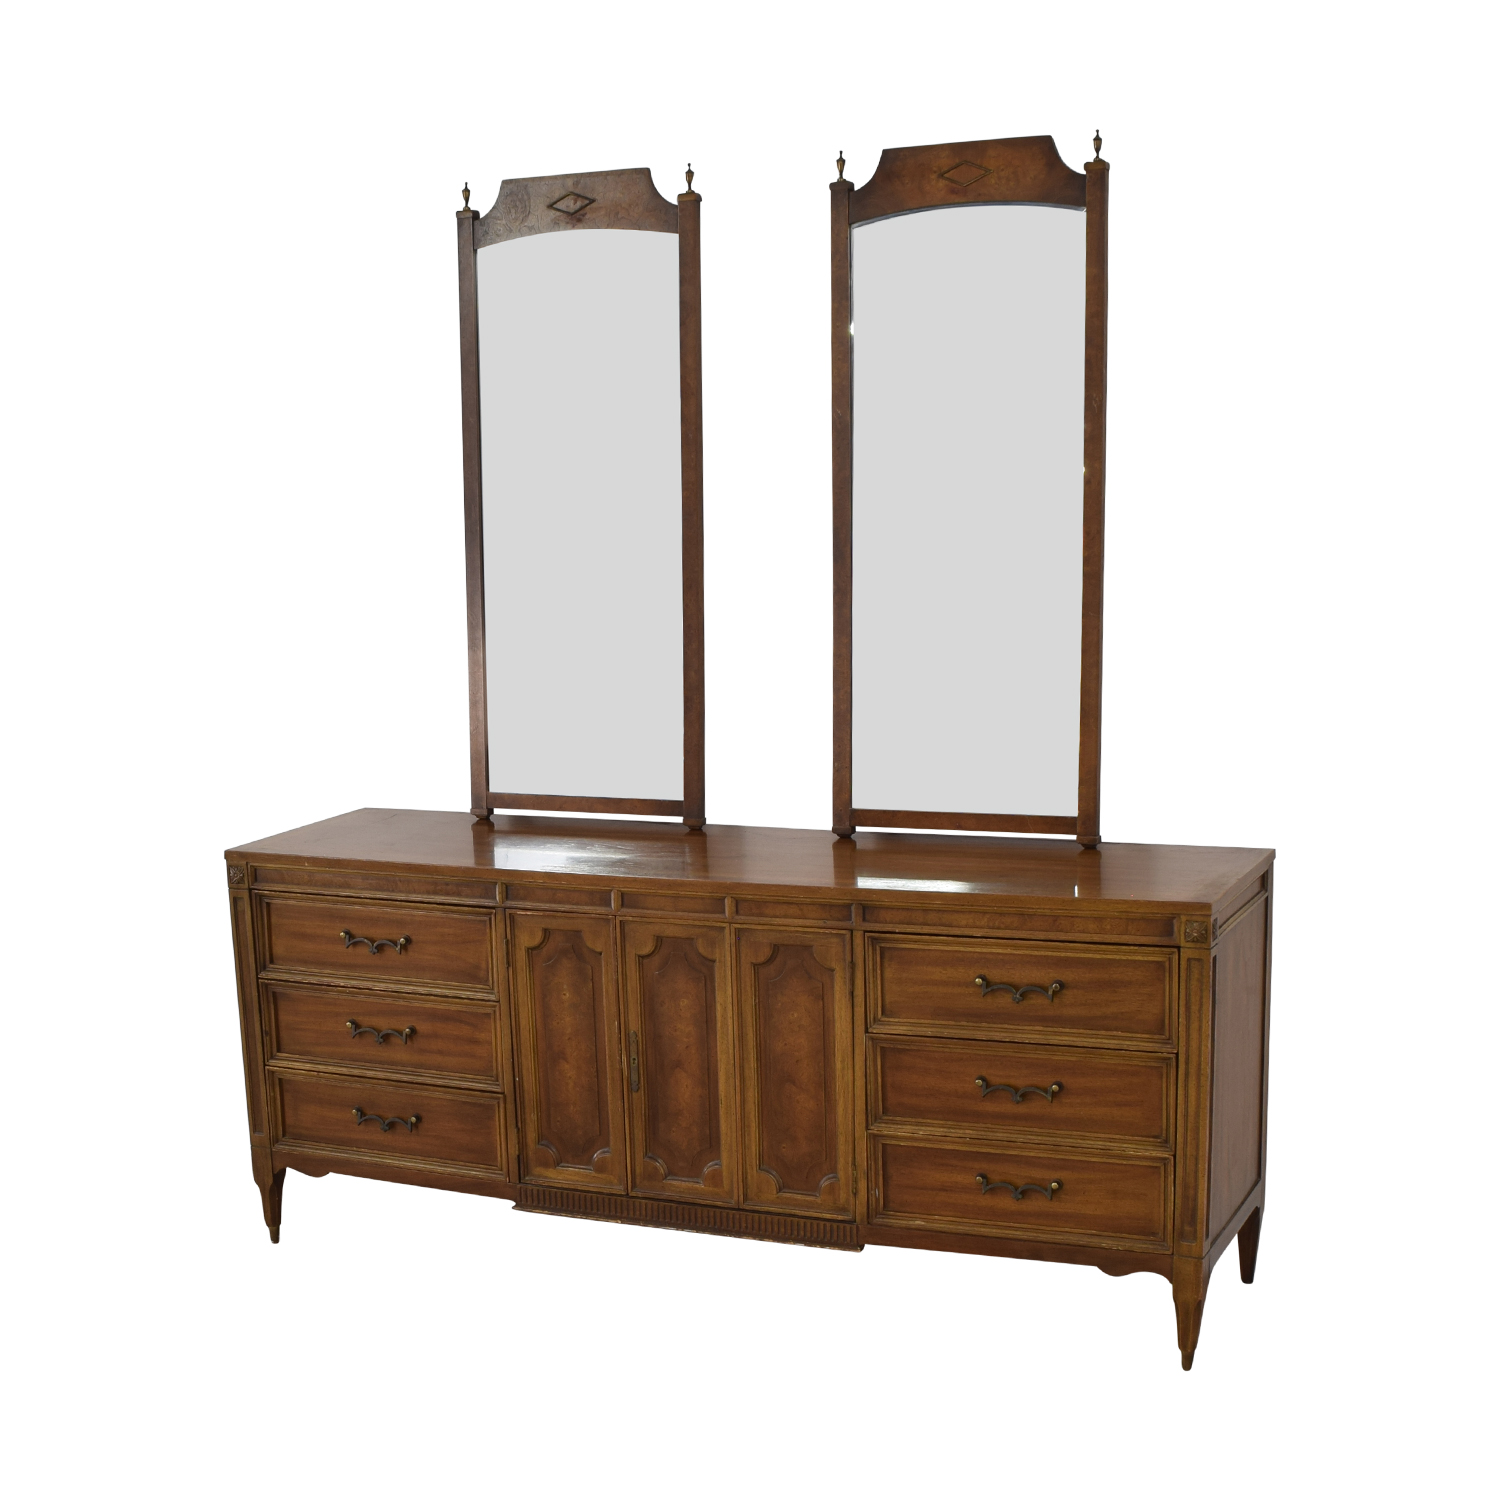 shop American of Martinsville American of Martinsville Vintage Dresser with Mirrors online